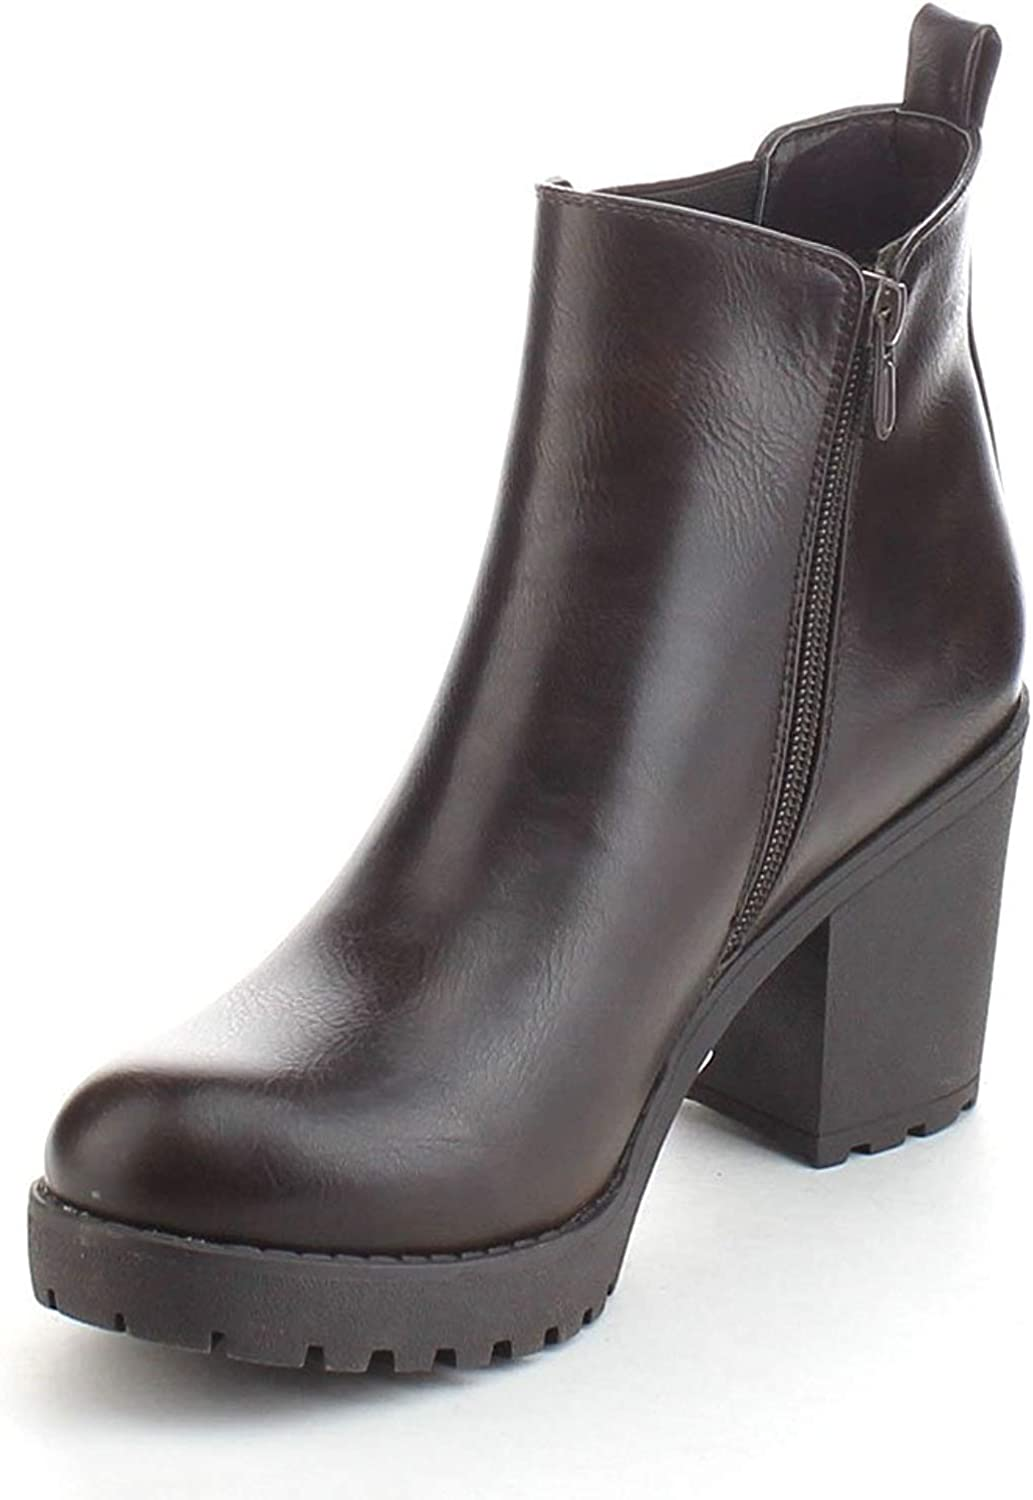 Details about  /Women/'s Round Toe Suede Fabric Chelsea Chunky Heel Ankle Boots 36//43 Winter L